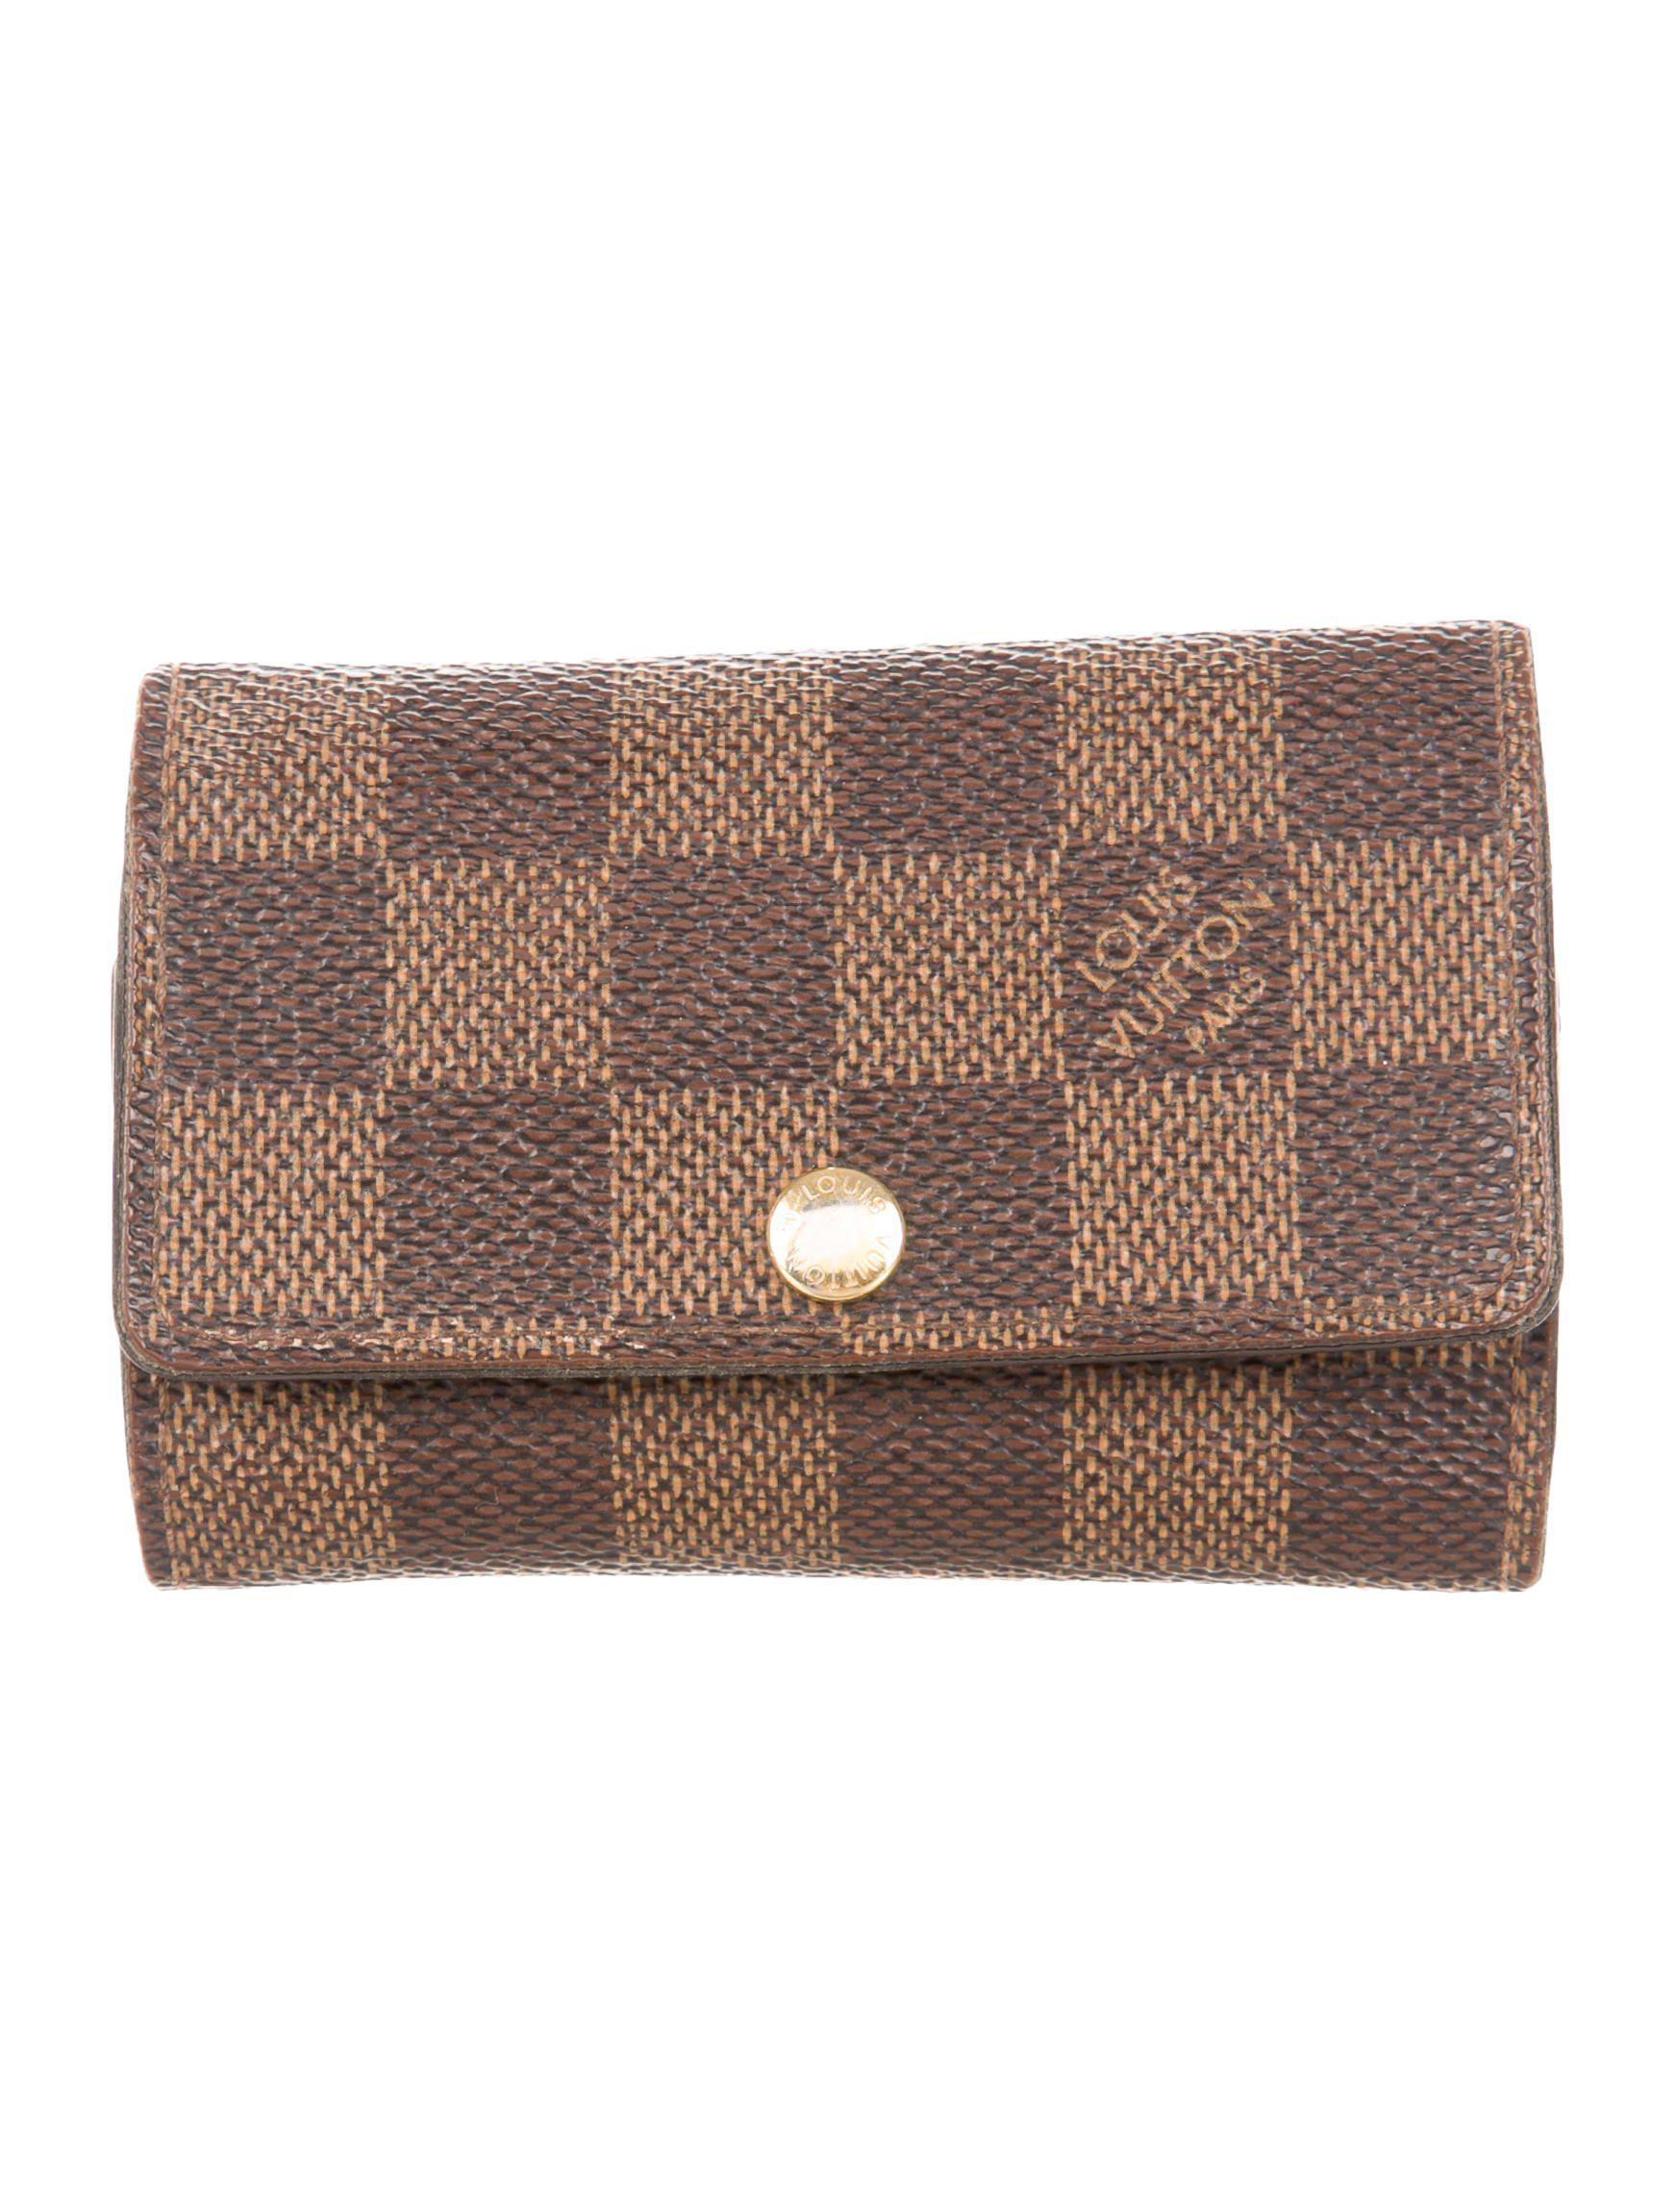 7a05363443e9f Lyst - Louis Vuitton Damier Ebene 6 Key Holder Brown in Natural